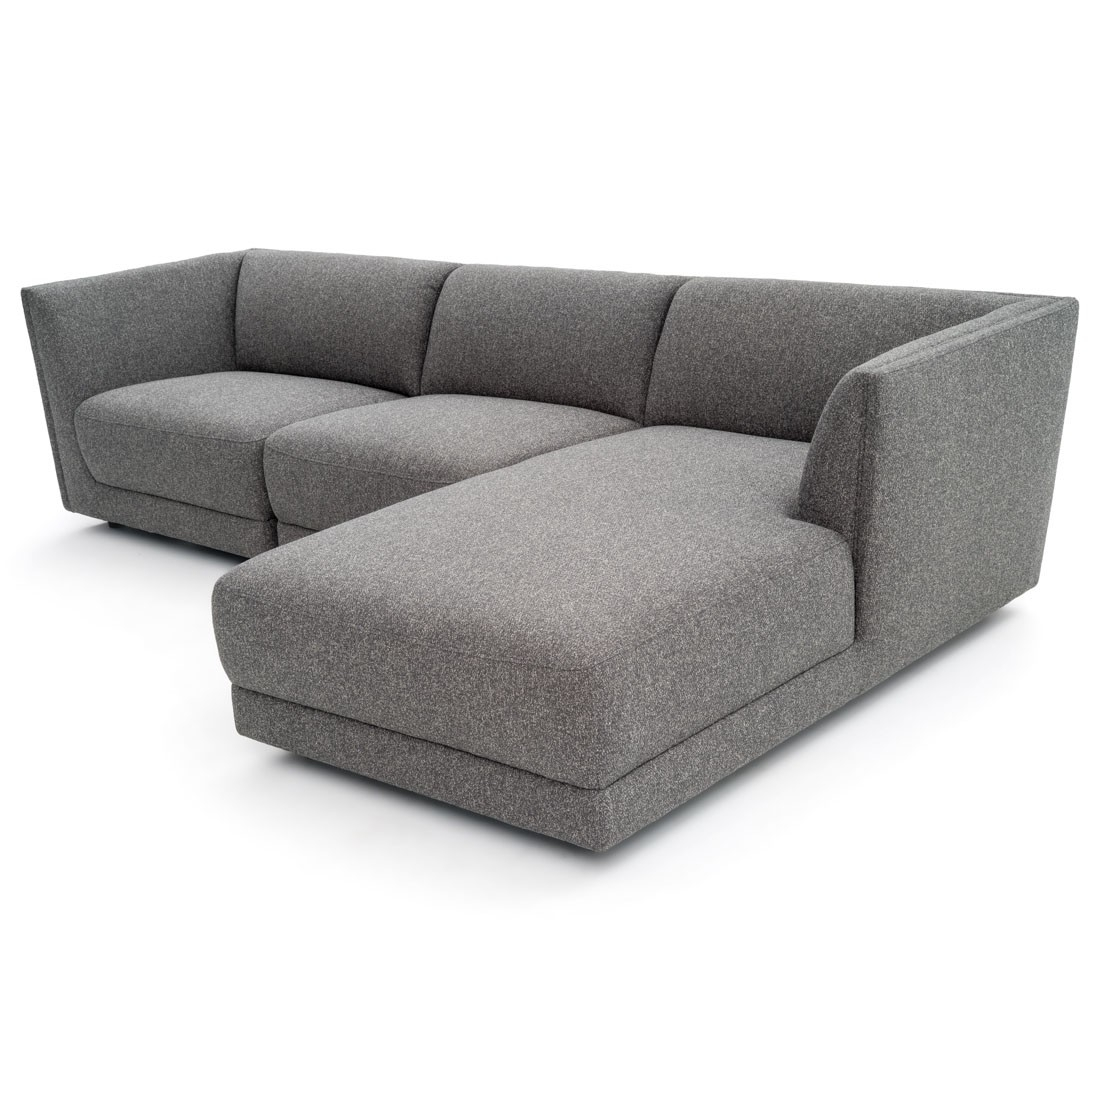 best 10 of mobilia sectional sofas ForMobilia 9 6